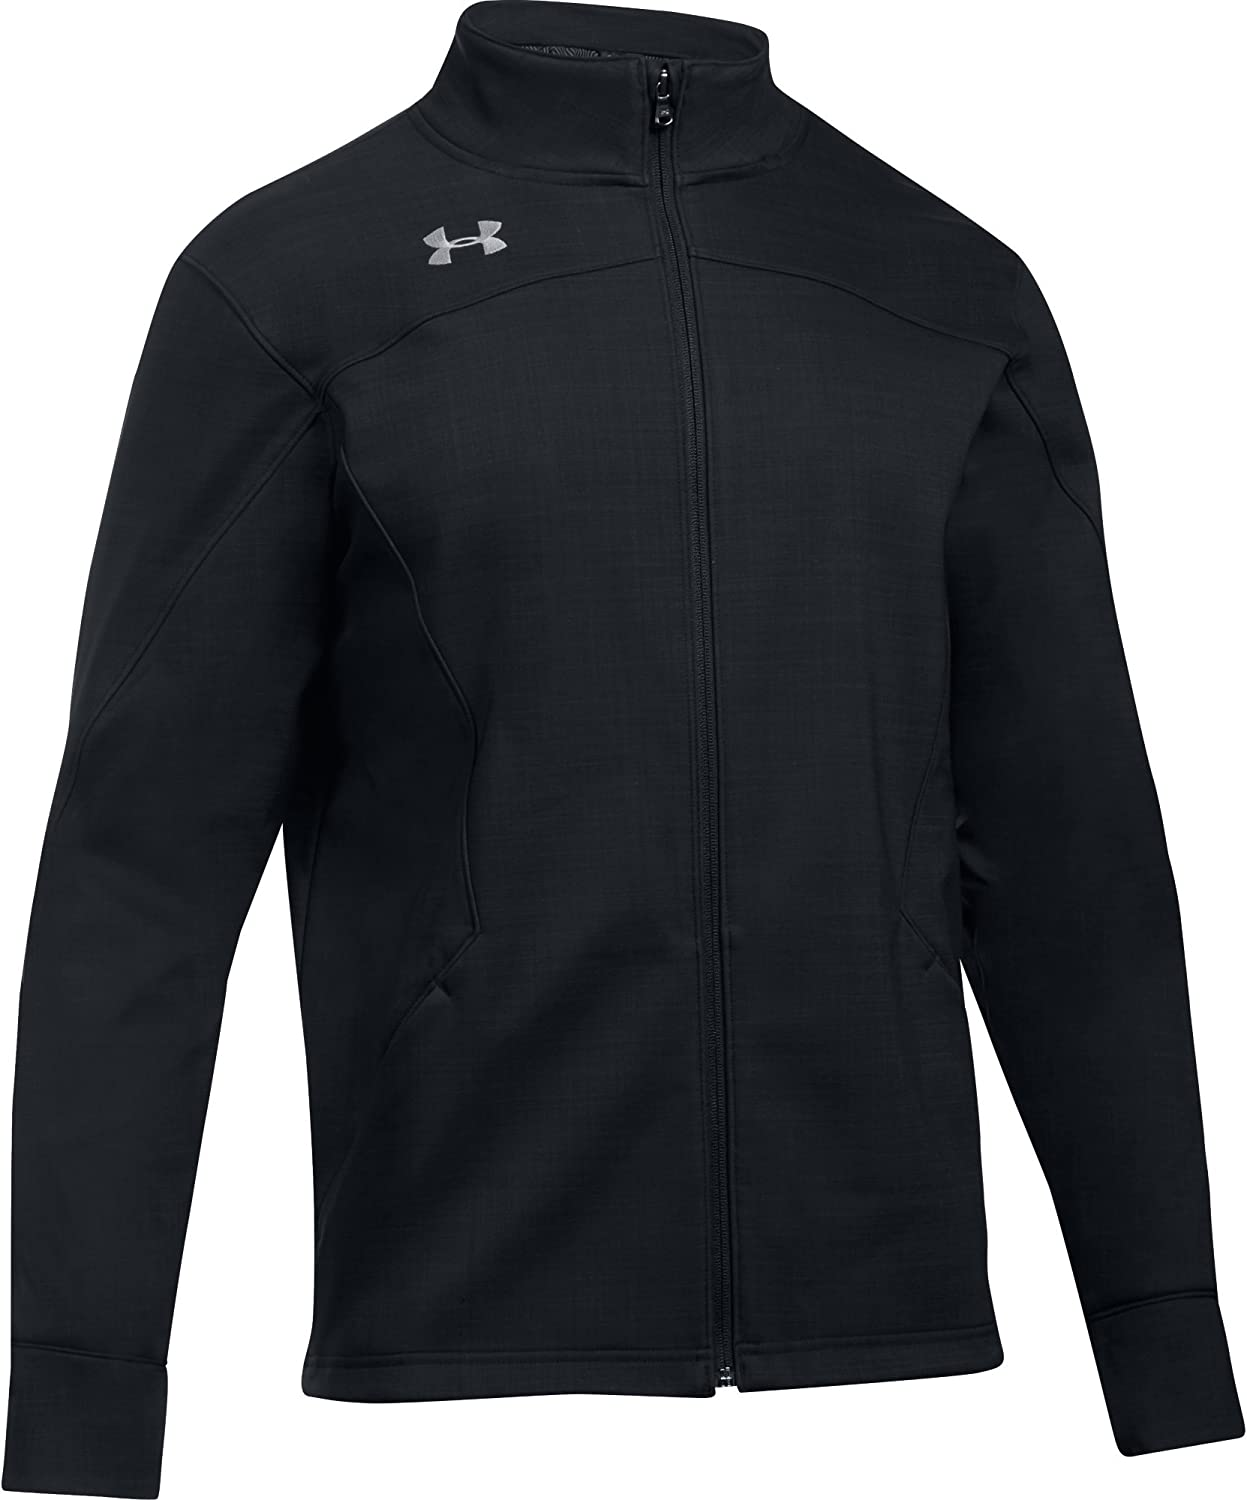 Super Special SALE held Under Armour Men's Barrage Jacket Max 82% OFF Shell Soft